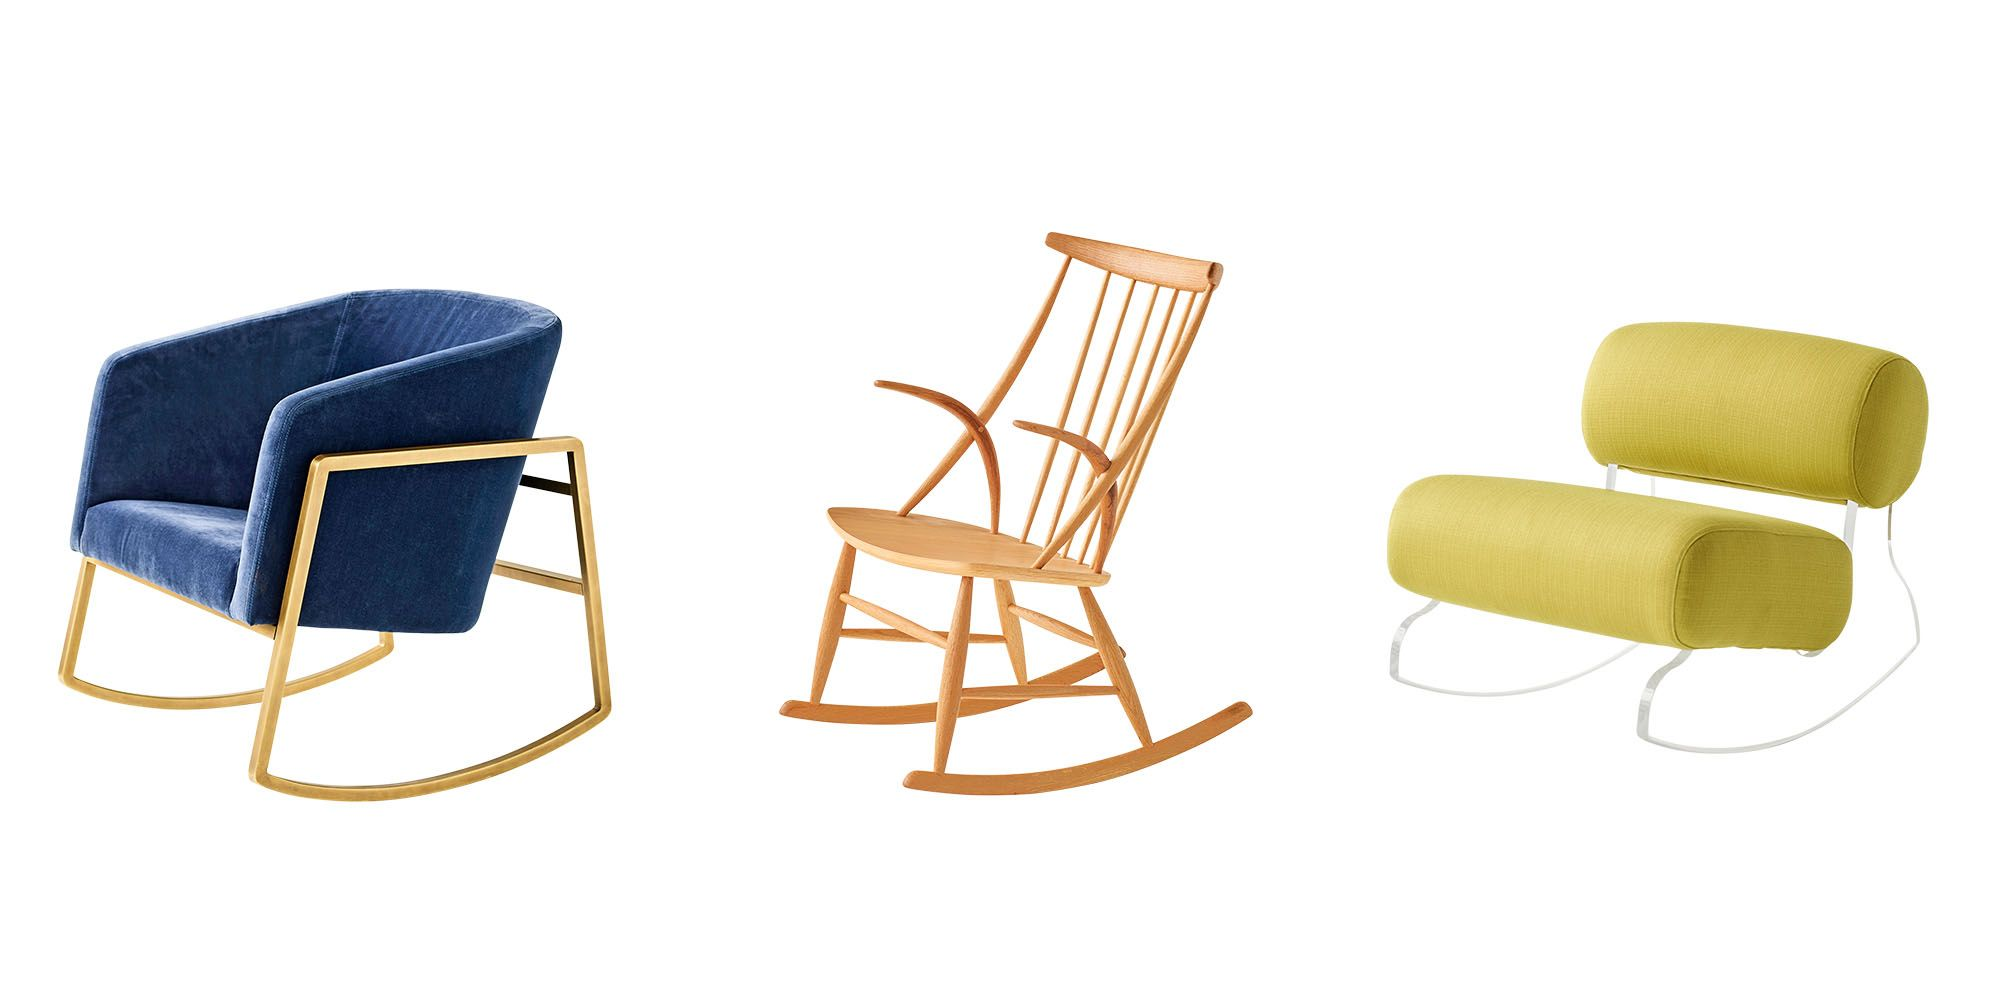 Beautiful 10 Rocking Chairs For Indoors Or Outdoors   Outdoor Rocking Chairs